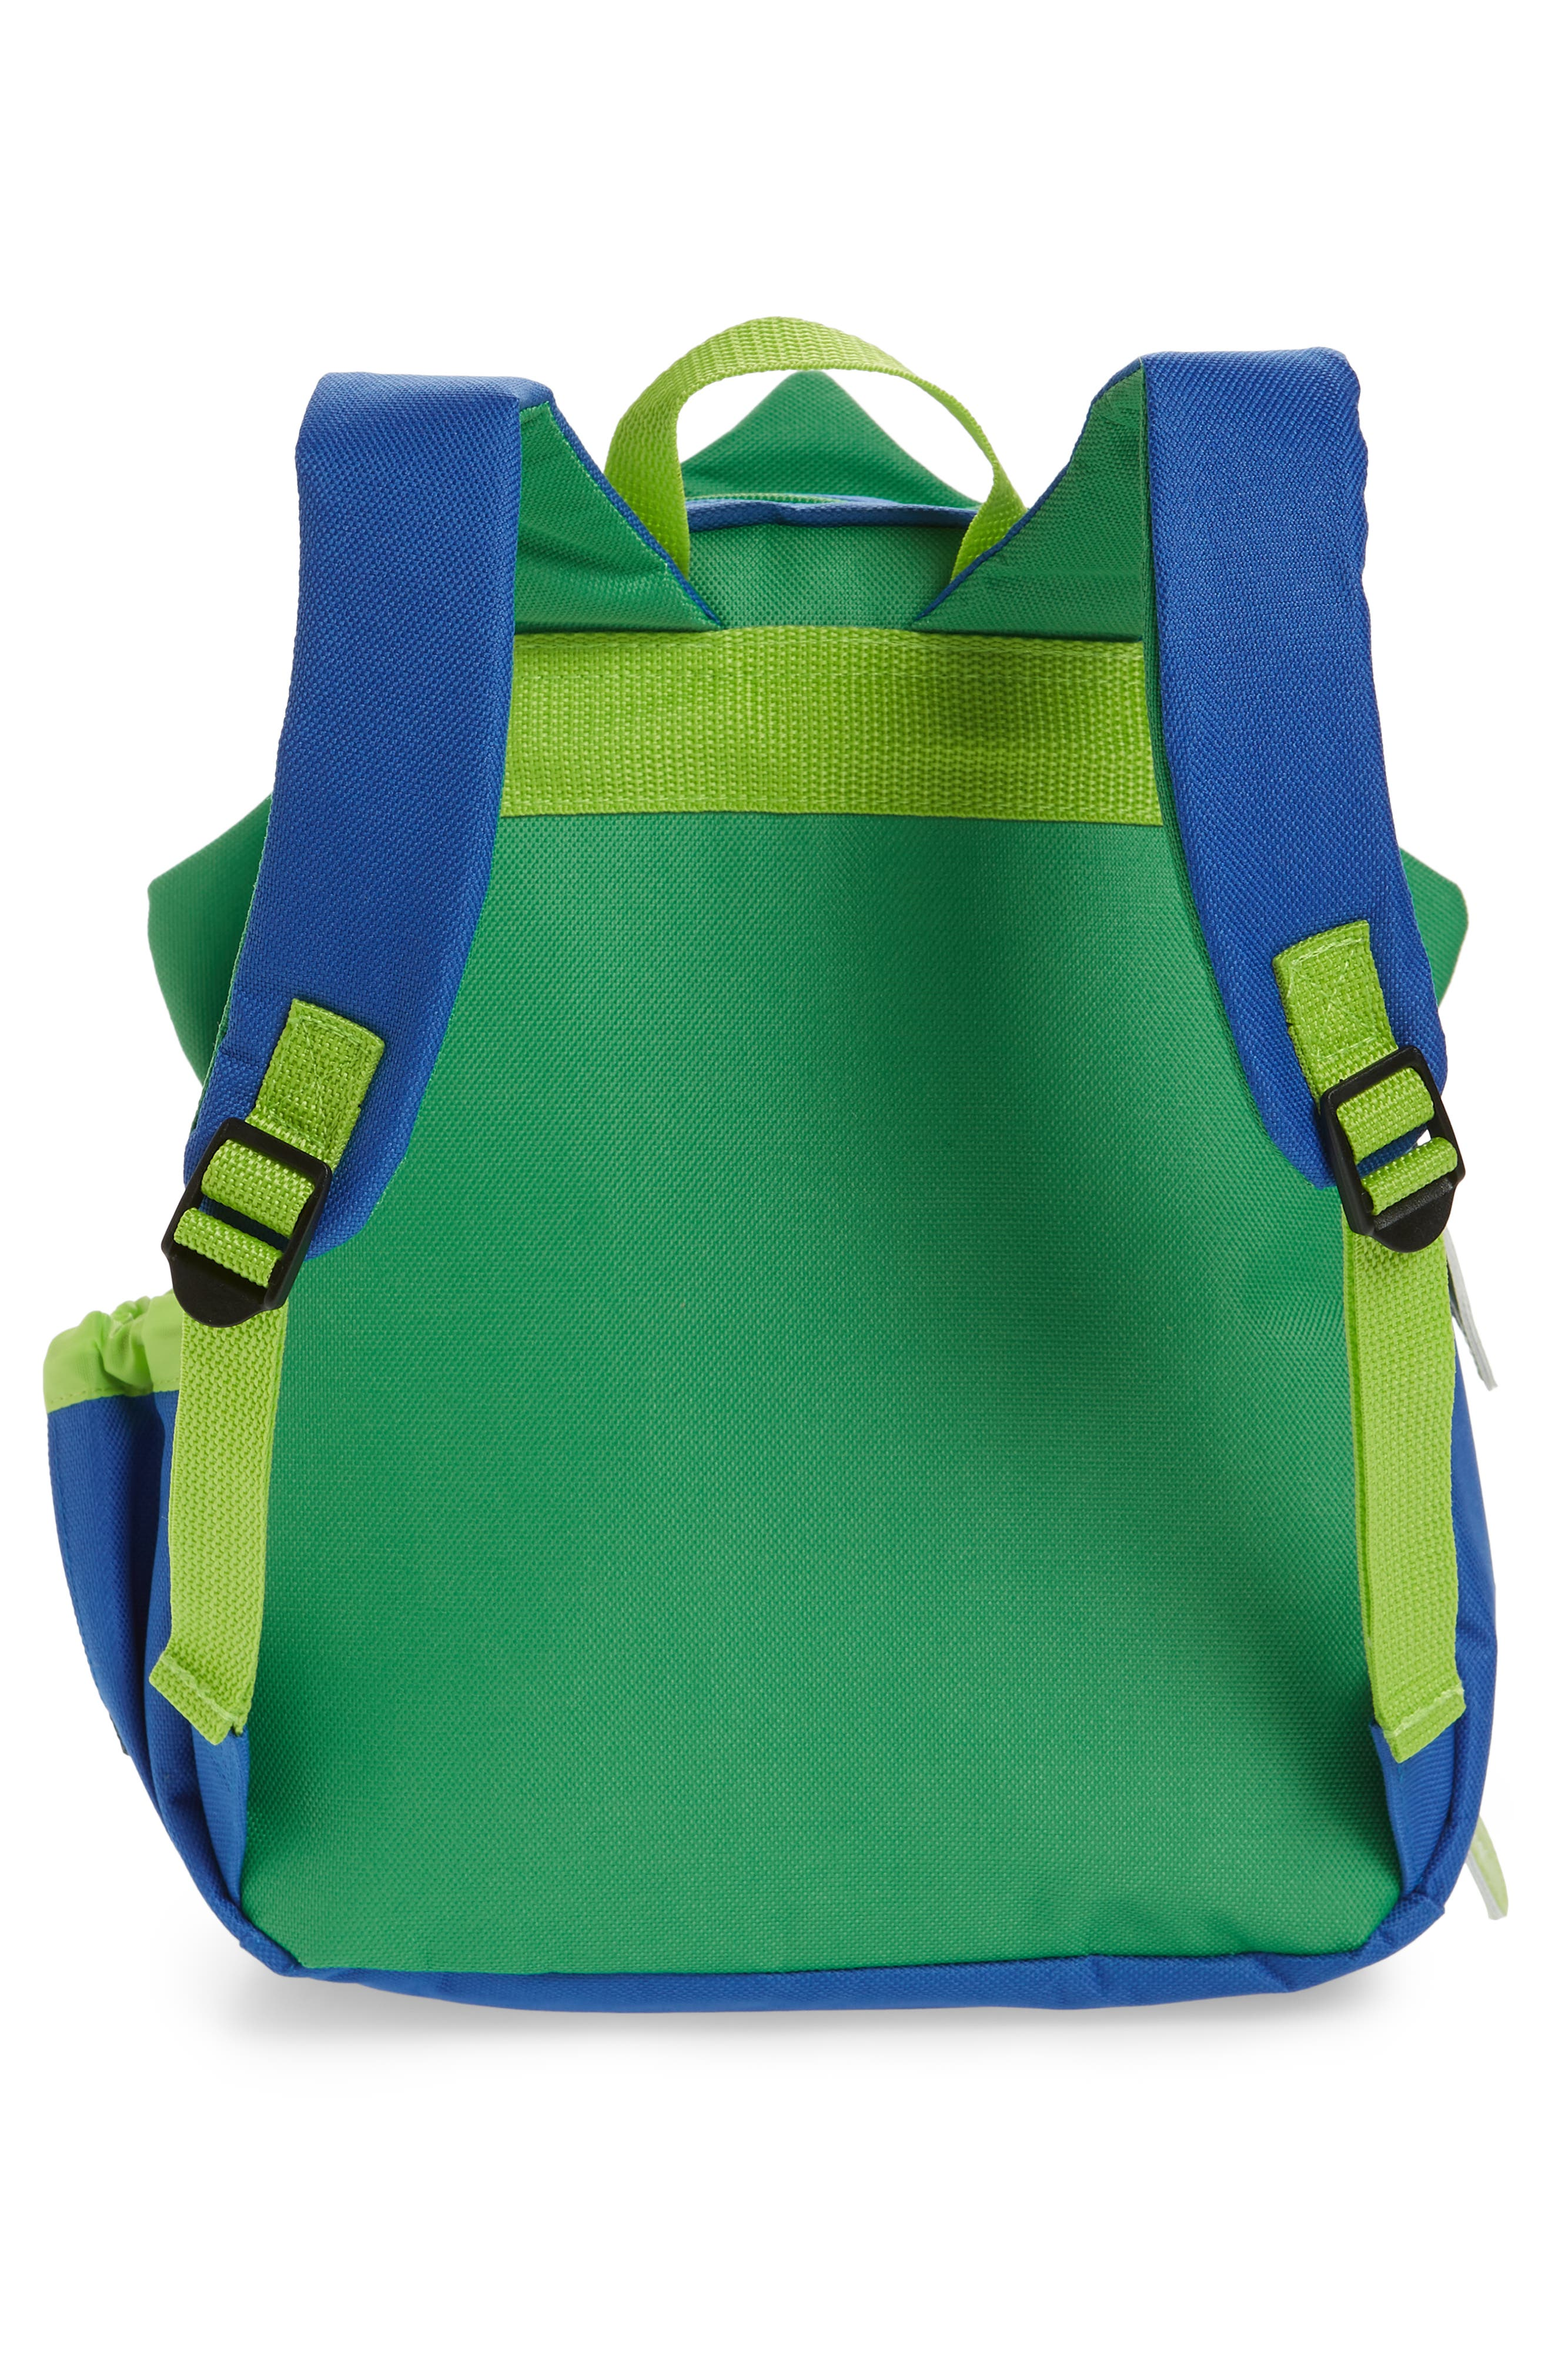 Zoo Pack Backpack,                             Alternate thumbnail 4, color,                             Green/ Blue